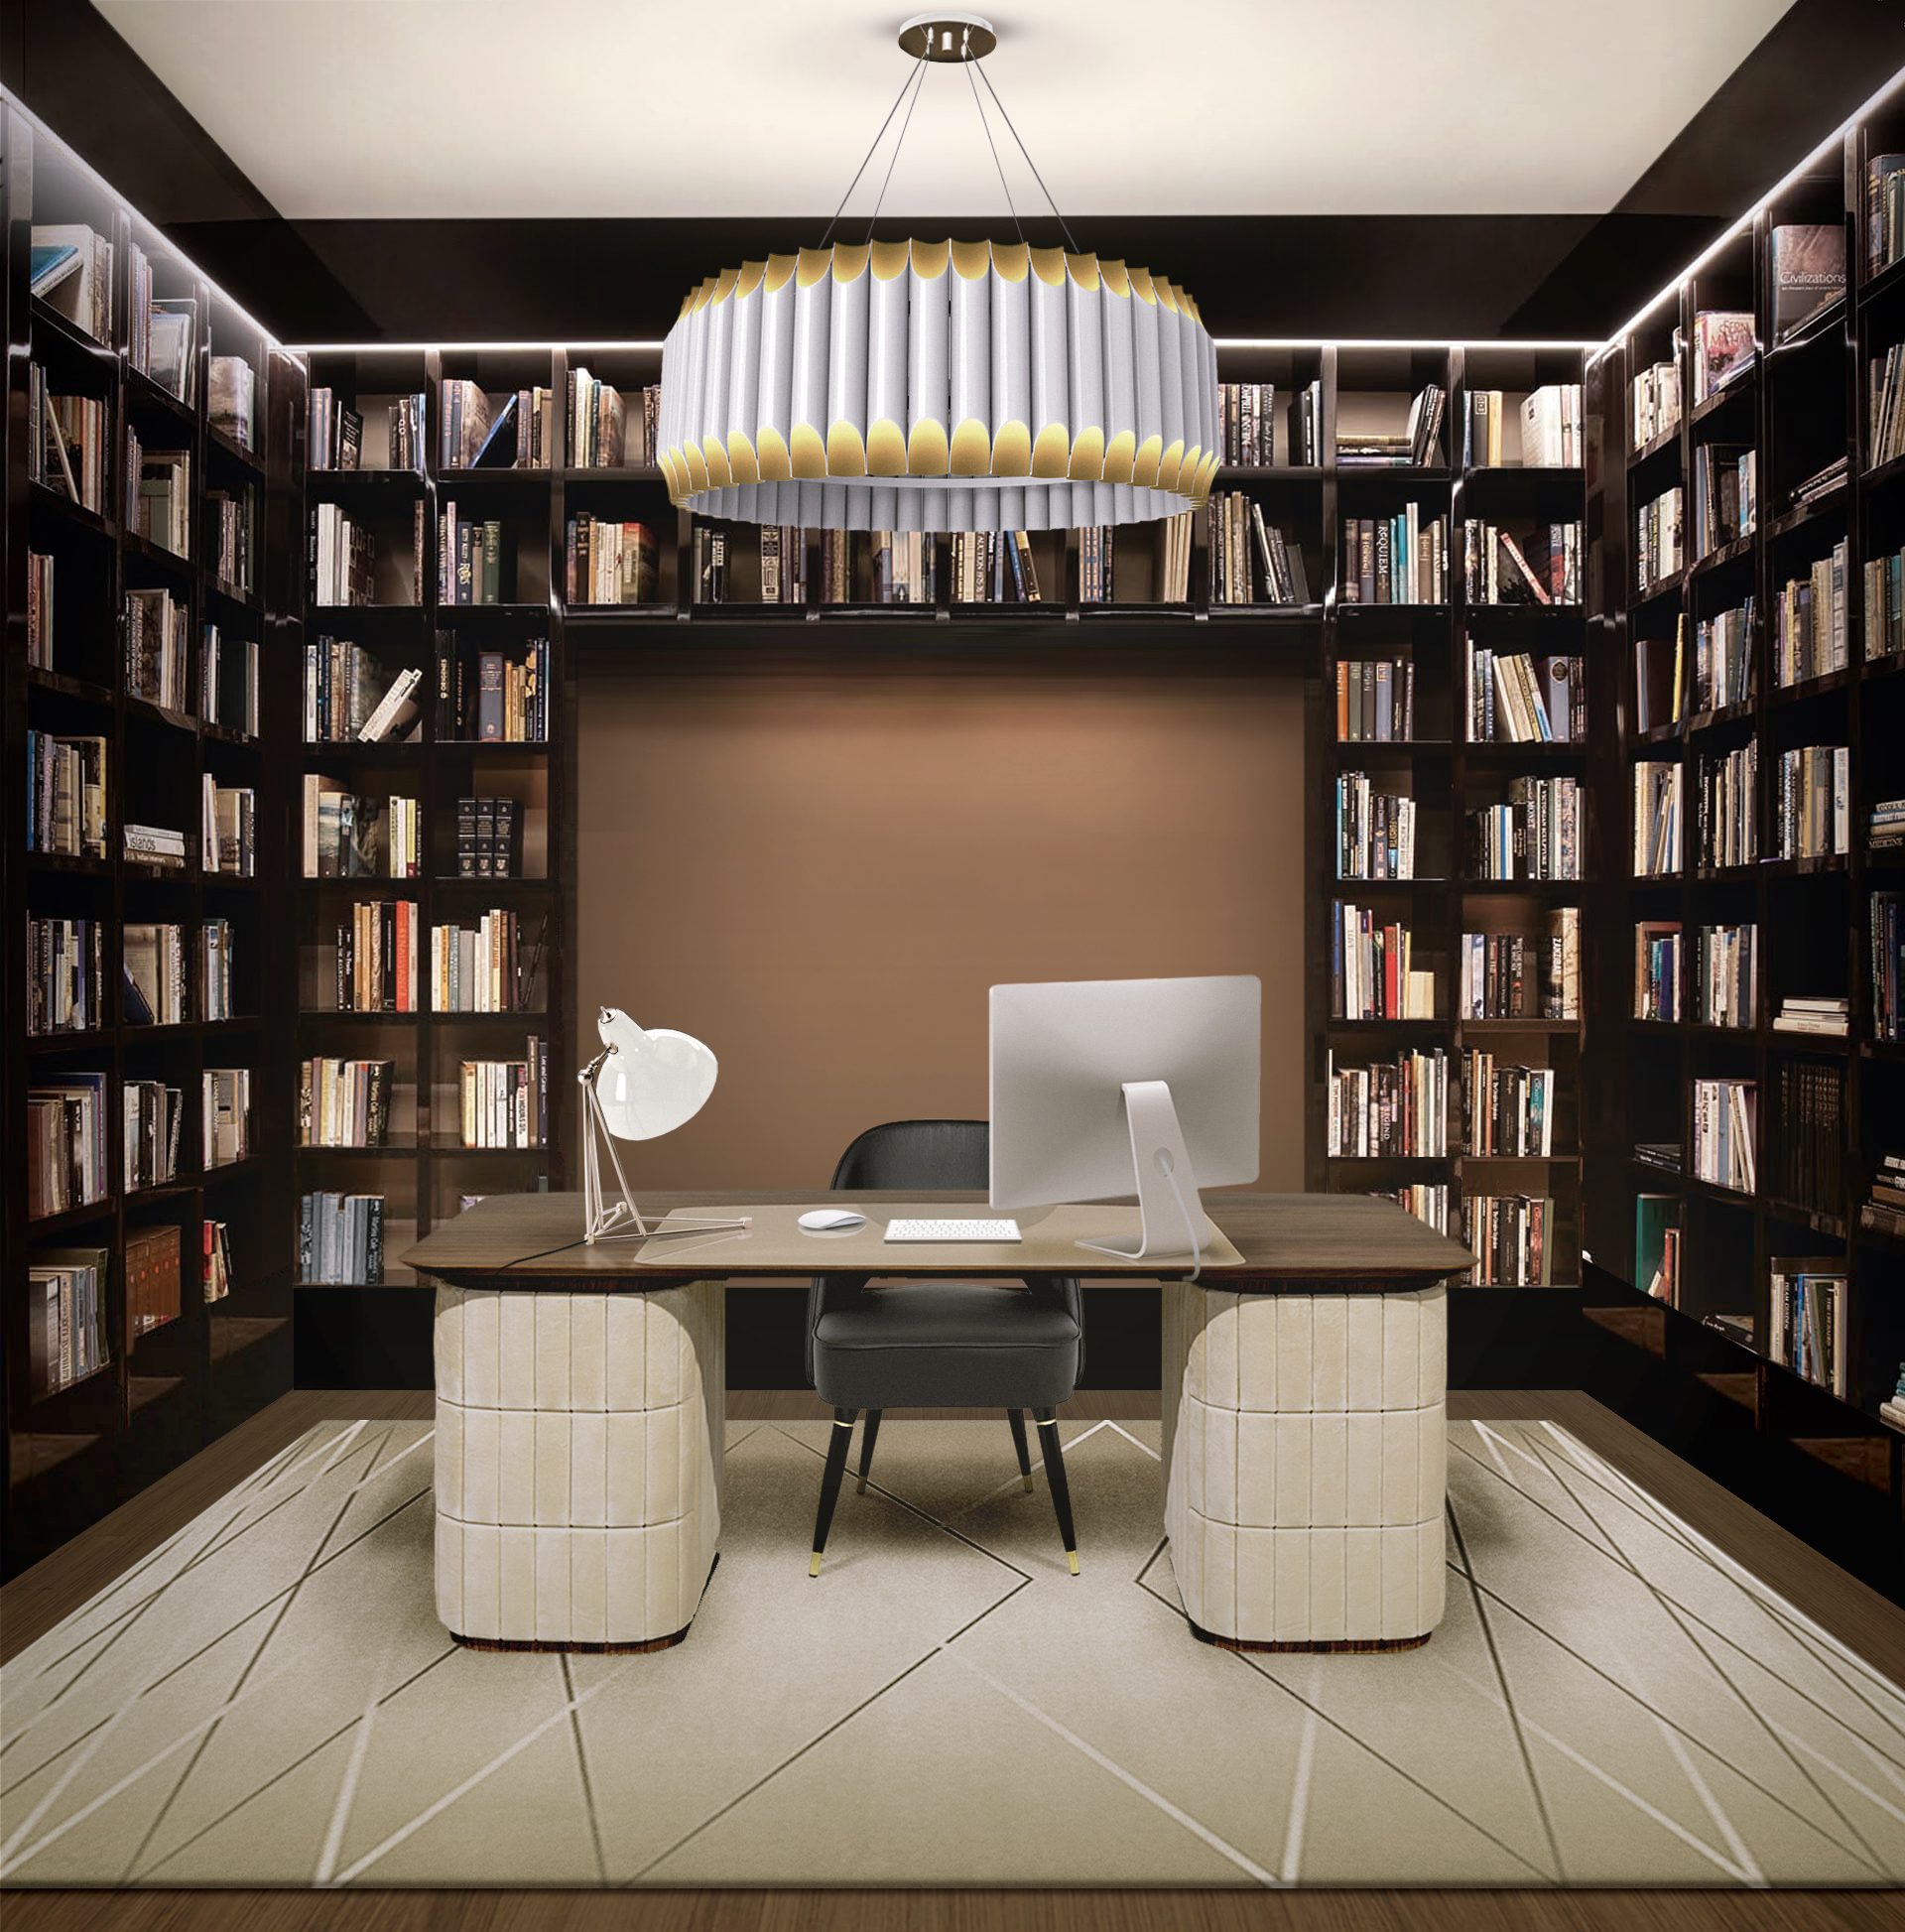 IMPROVE YOUR WORKSPACE WITH THIS HOME OFFICE INSPIRATION